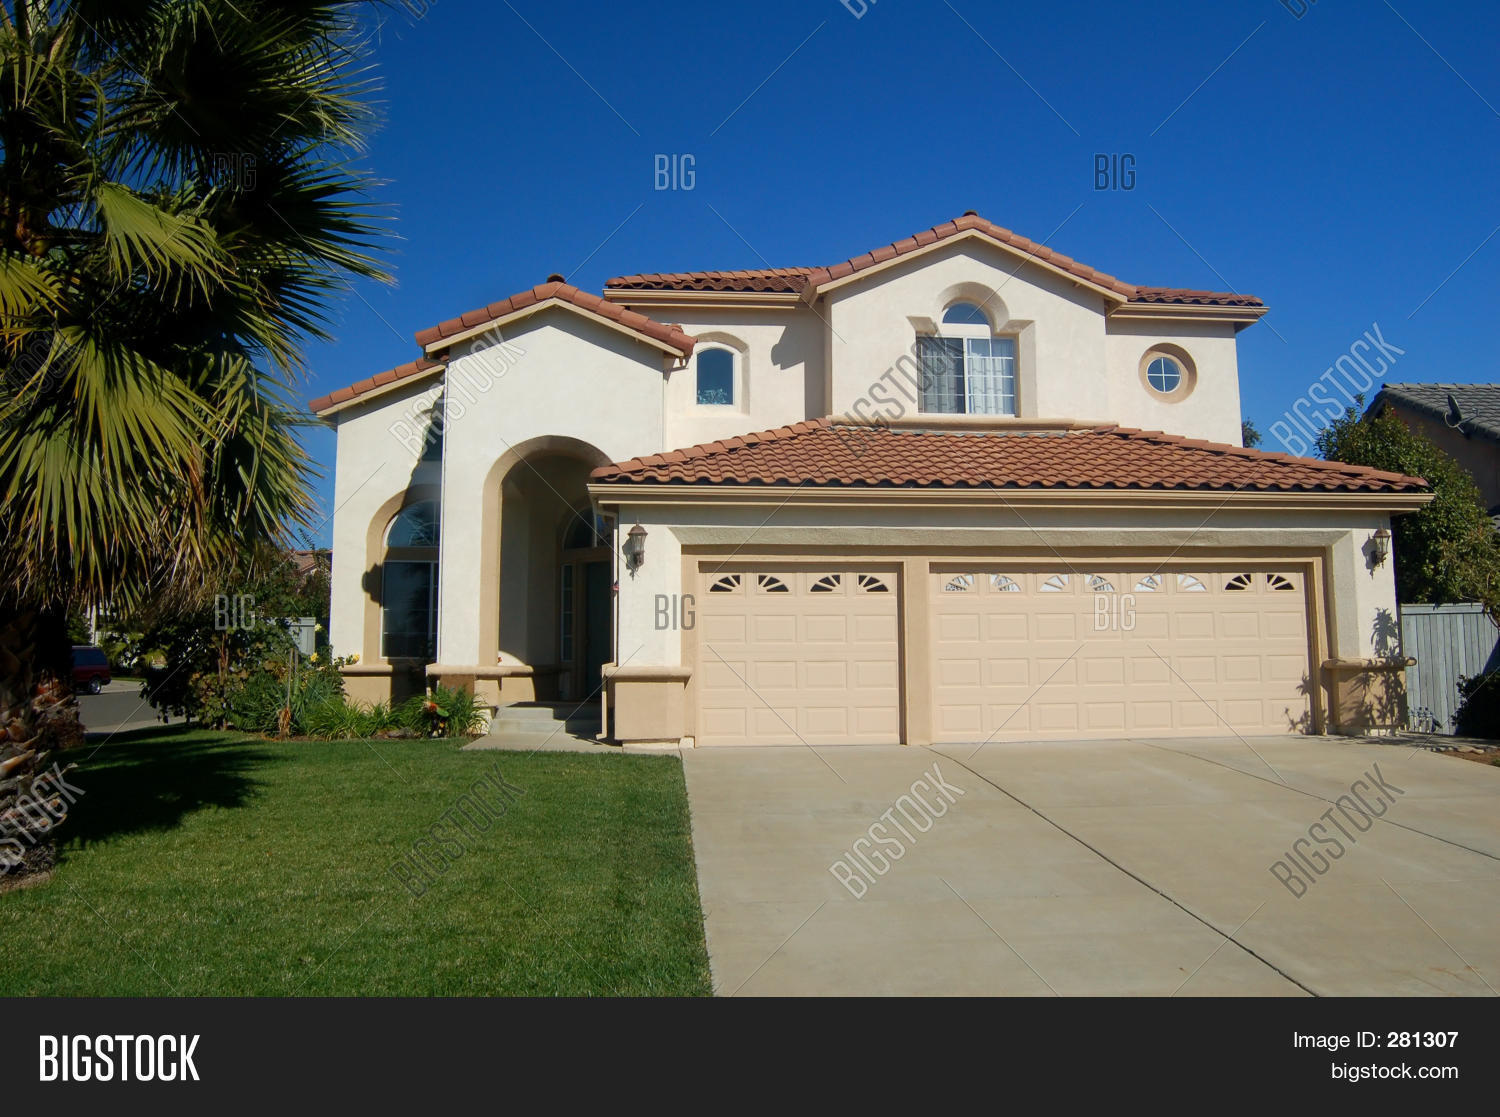 Nice house california image photo bigstock for Nice house images